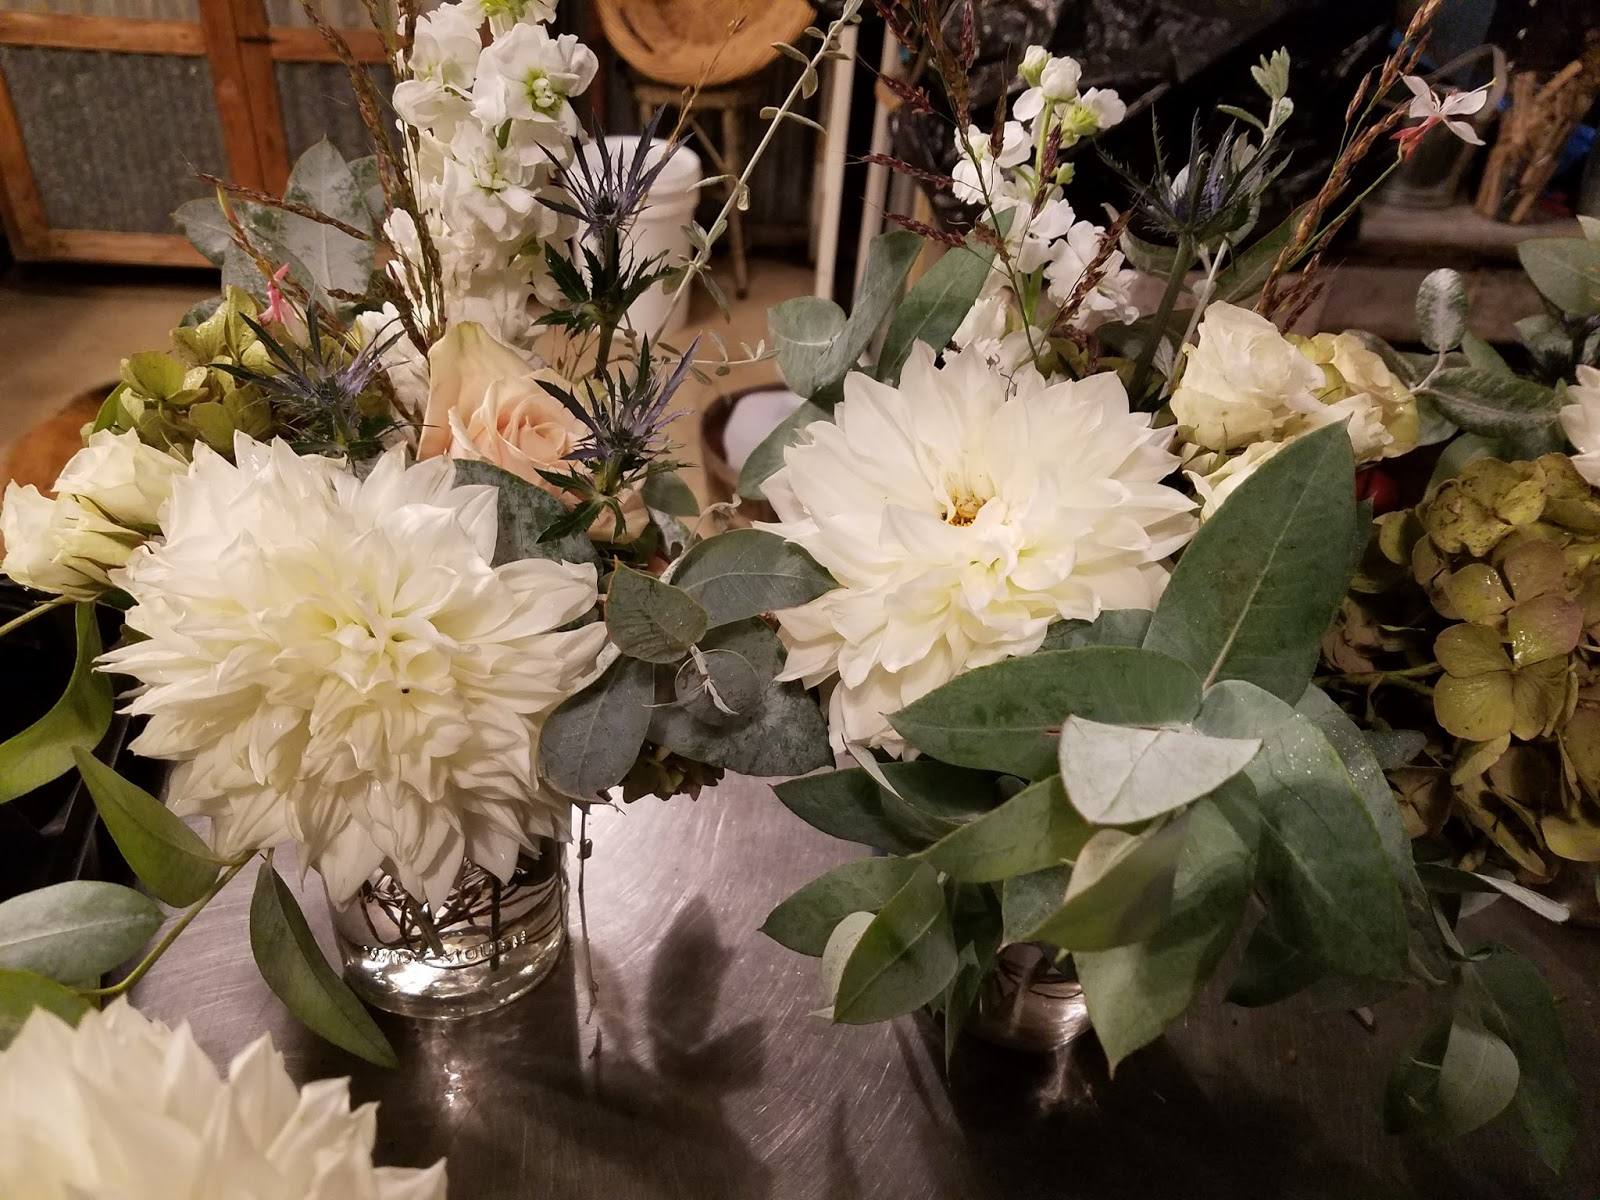 Windmill Farm Wedding Flowers And Knitting For Christmas